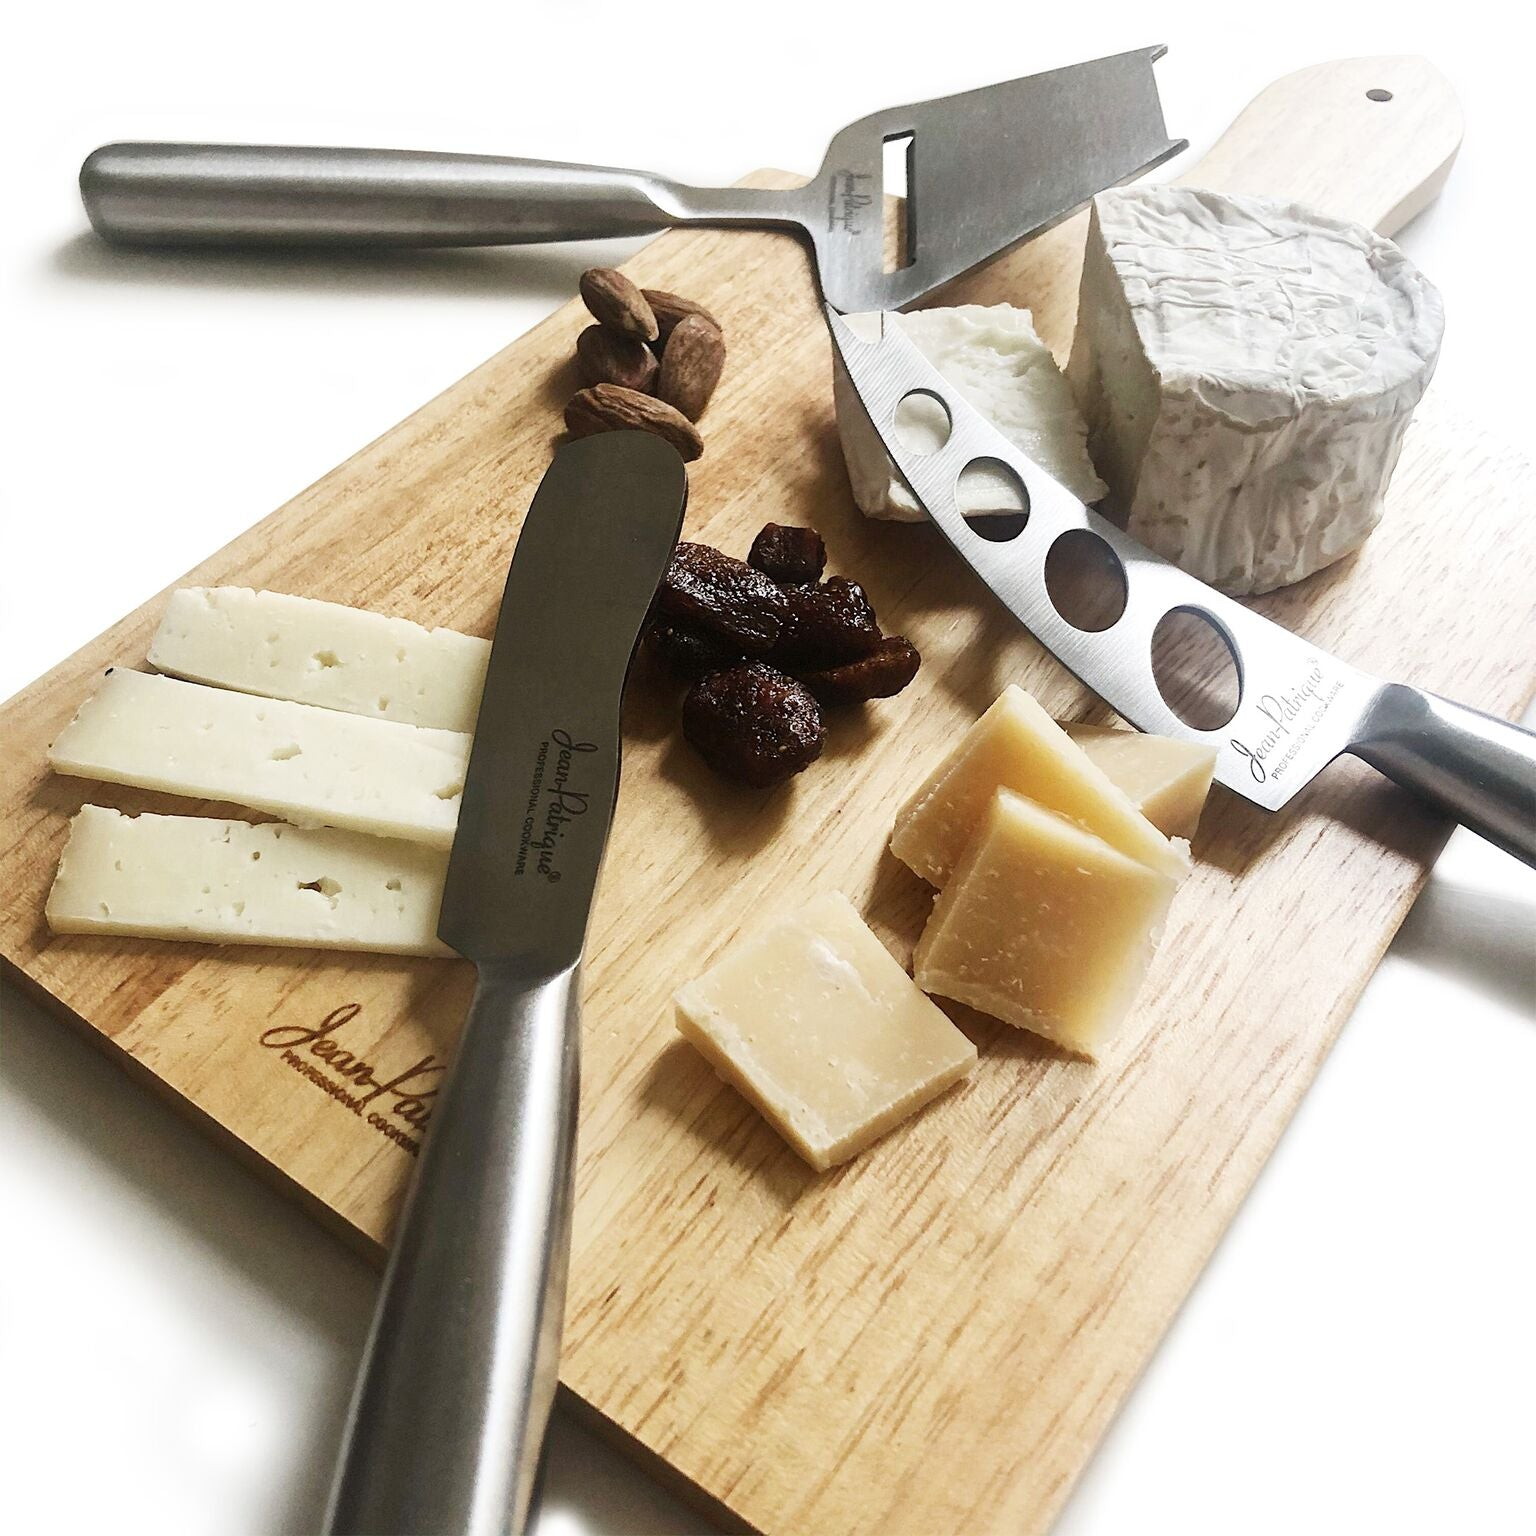 3-Piece Cheese Knife Set with Traditional Cheese Board